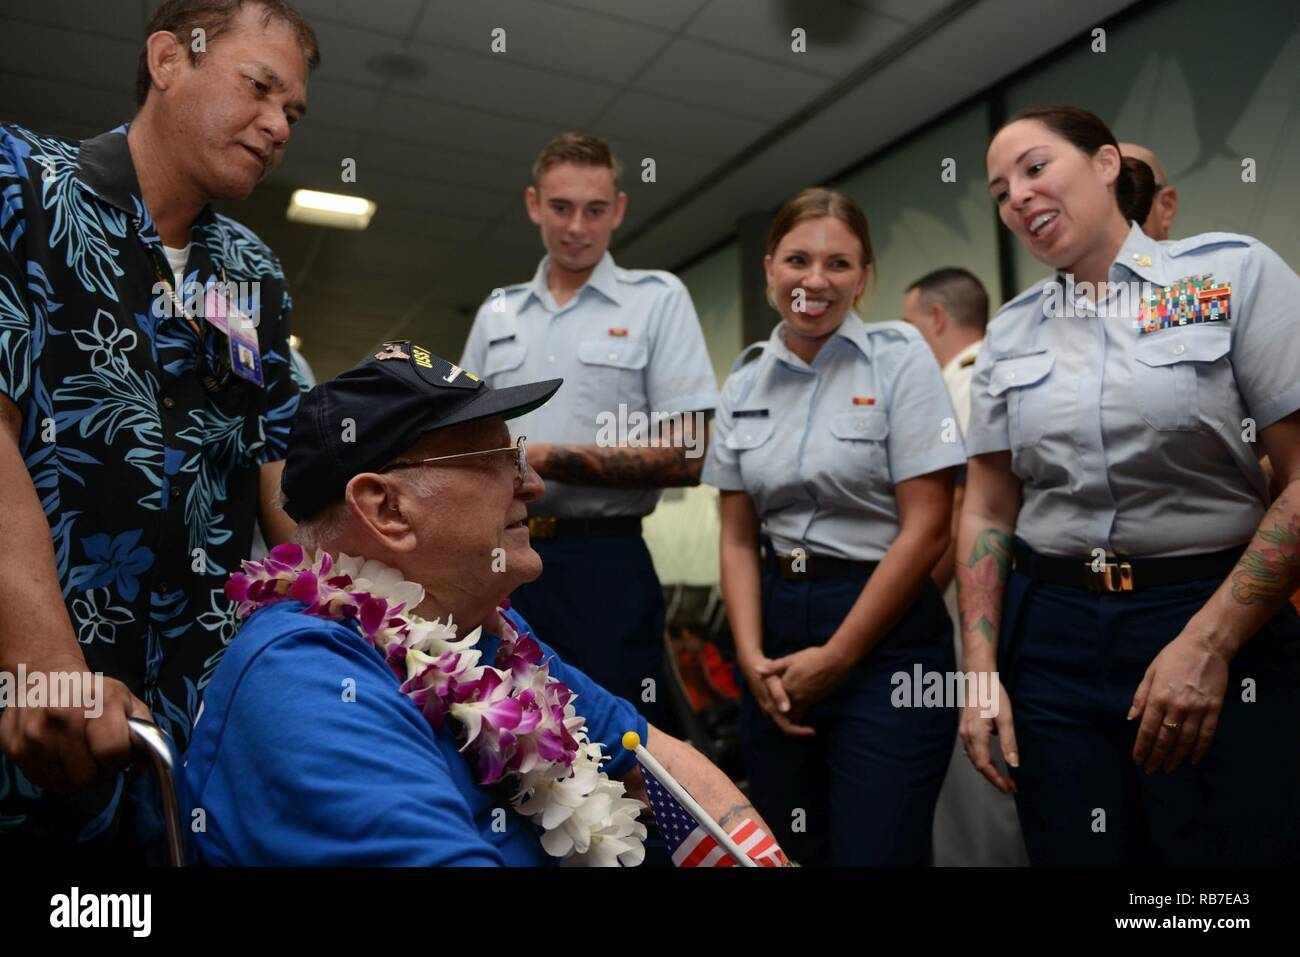 a world war ii is greeted by coast guard members and several other